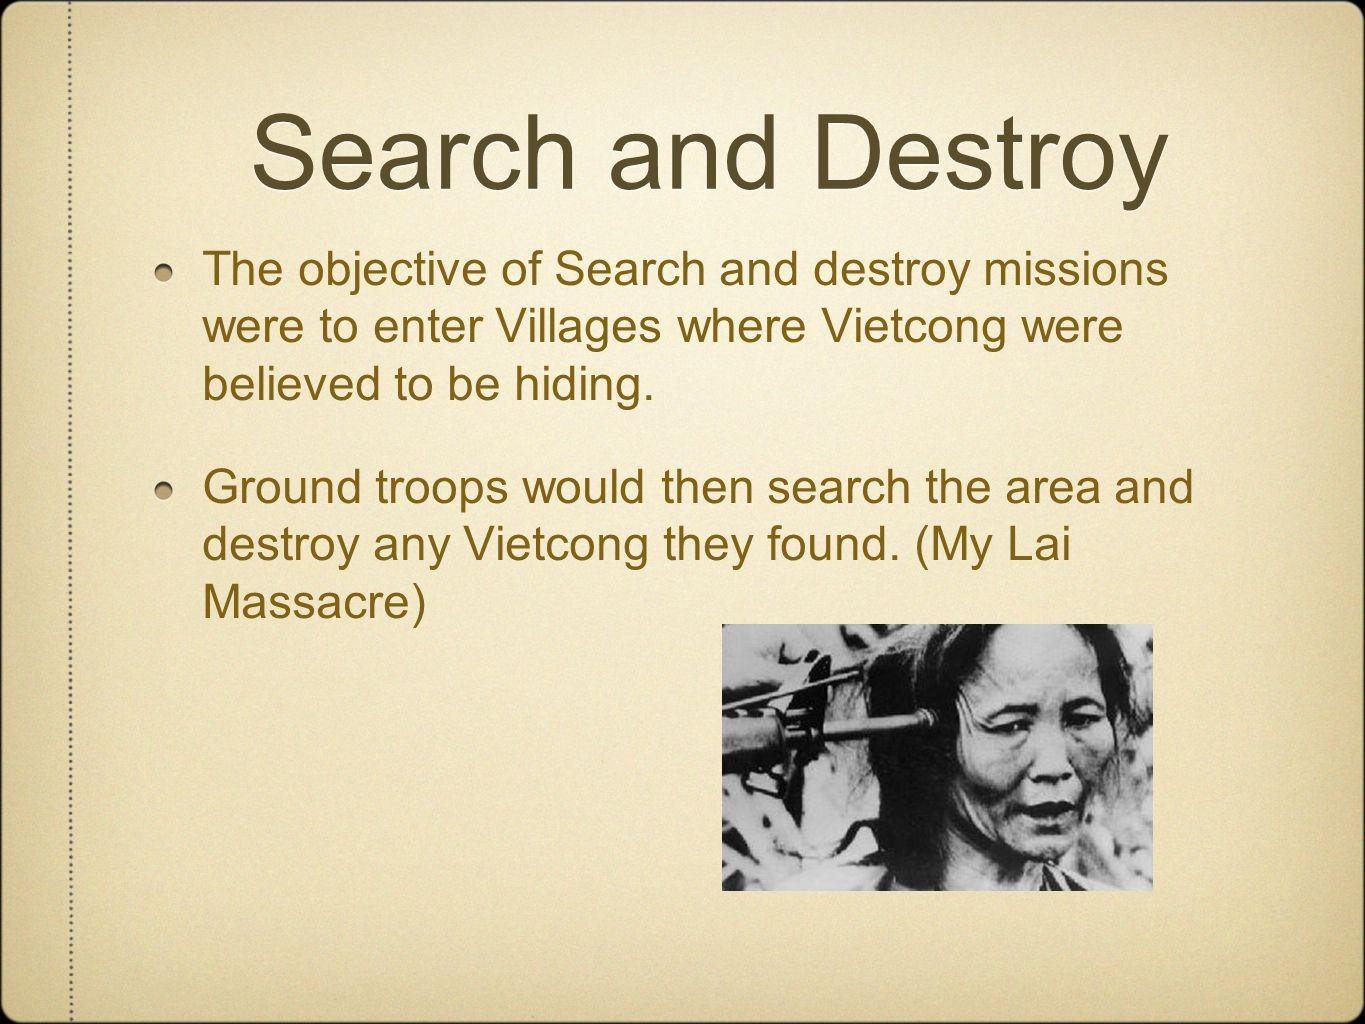 Search and Destroy The objective of Search and destroy missions were to enter Villages where Vietcong were believed to be hiding.